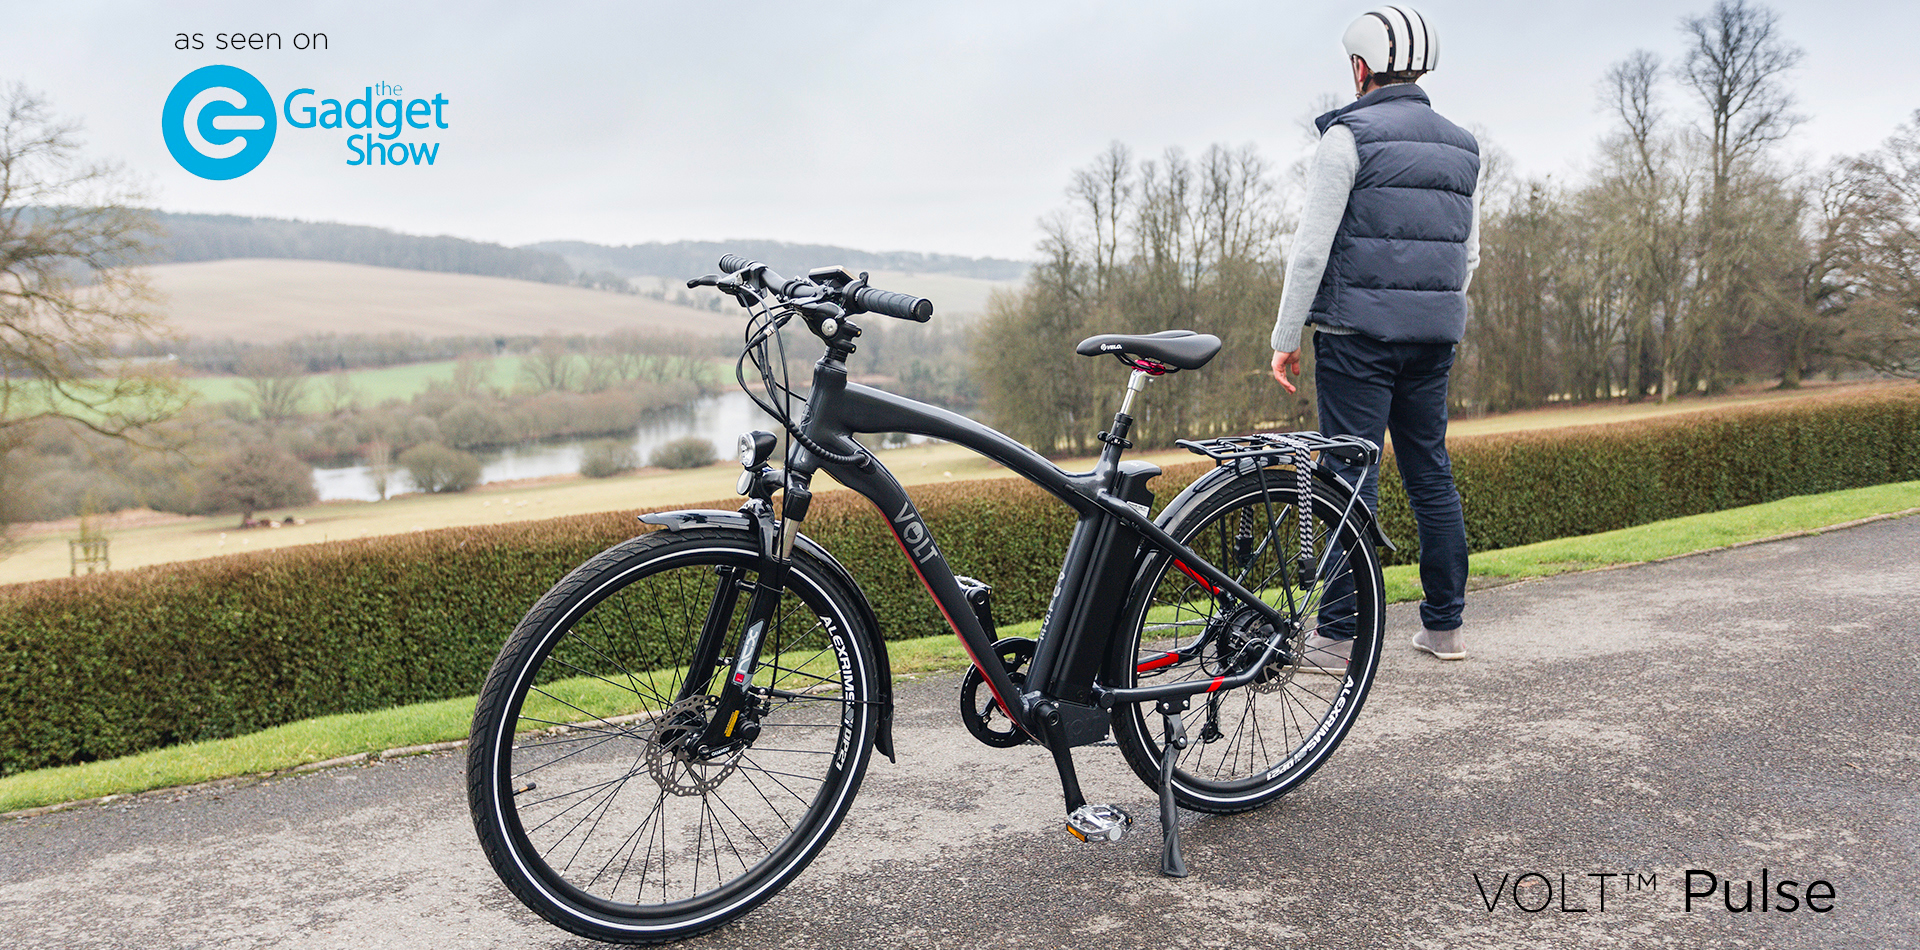 https://electric-bike-store.co.uk/wp-content/uploads/2017/06/Explore-the-City-and-Countryside-on-a-VOLT-Pulse-Hybrid-e-bike-3.jpg